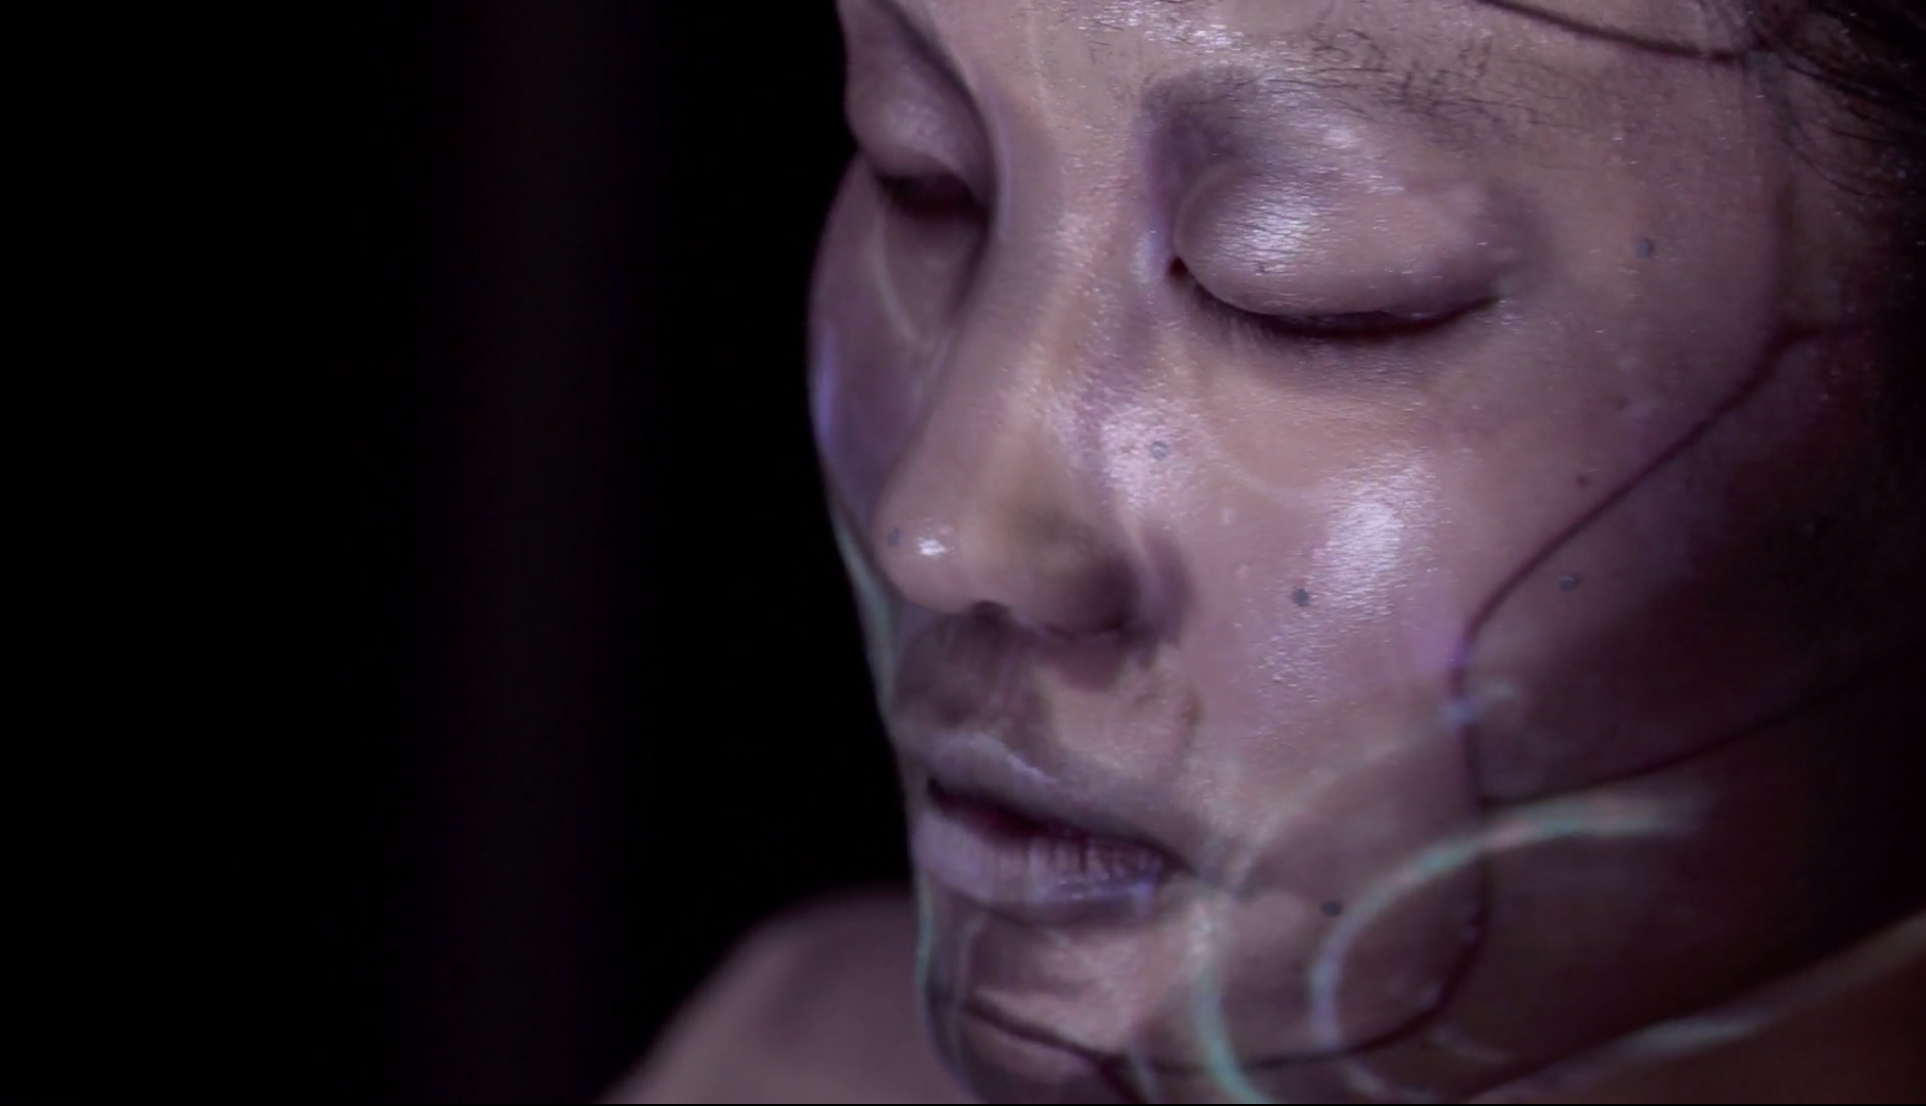 OMOTE--REAL-TIME-FACE-TRACKING-&-PROJECTION-MAPPING-3dart